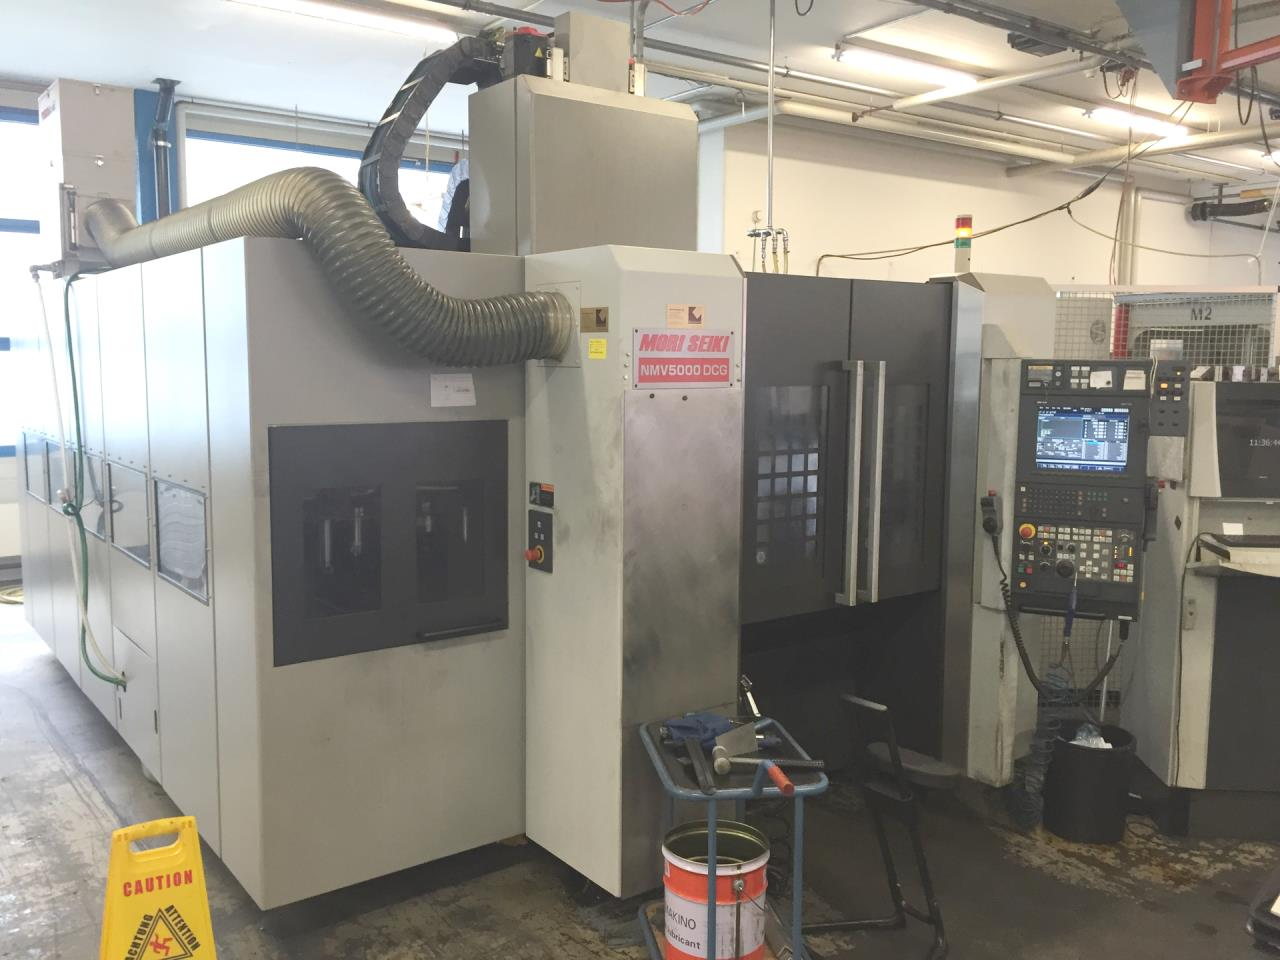 Vertical machining center MORI SEIKI NMV 5000 DCG